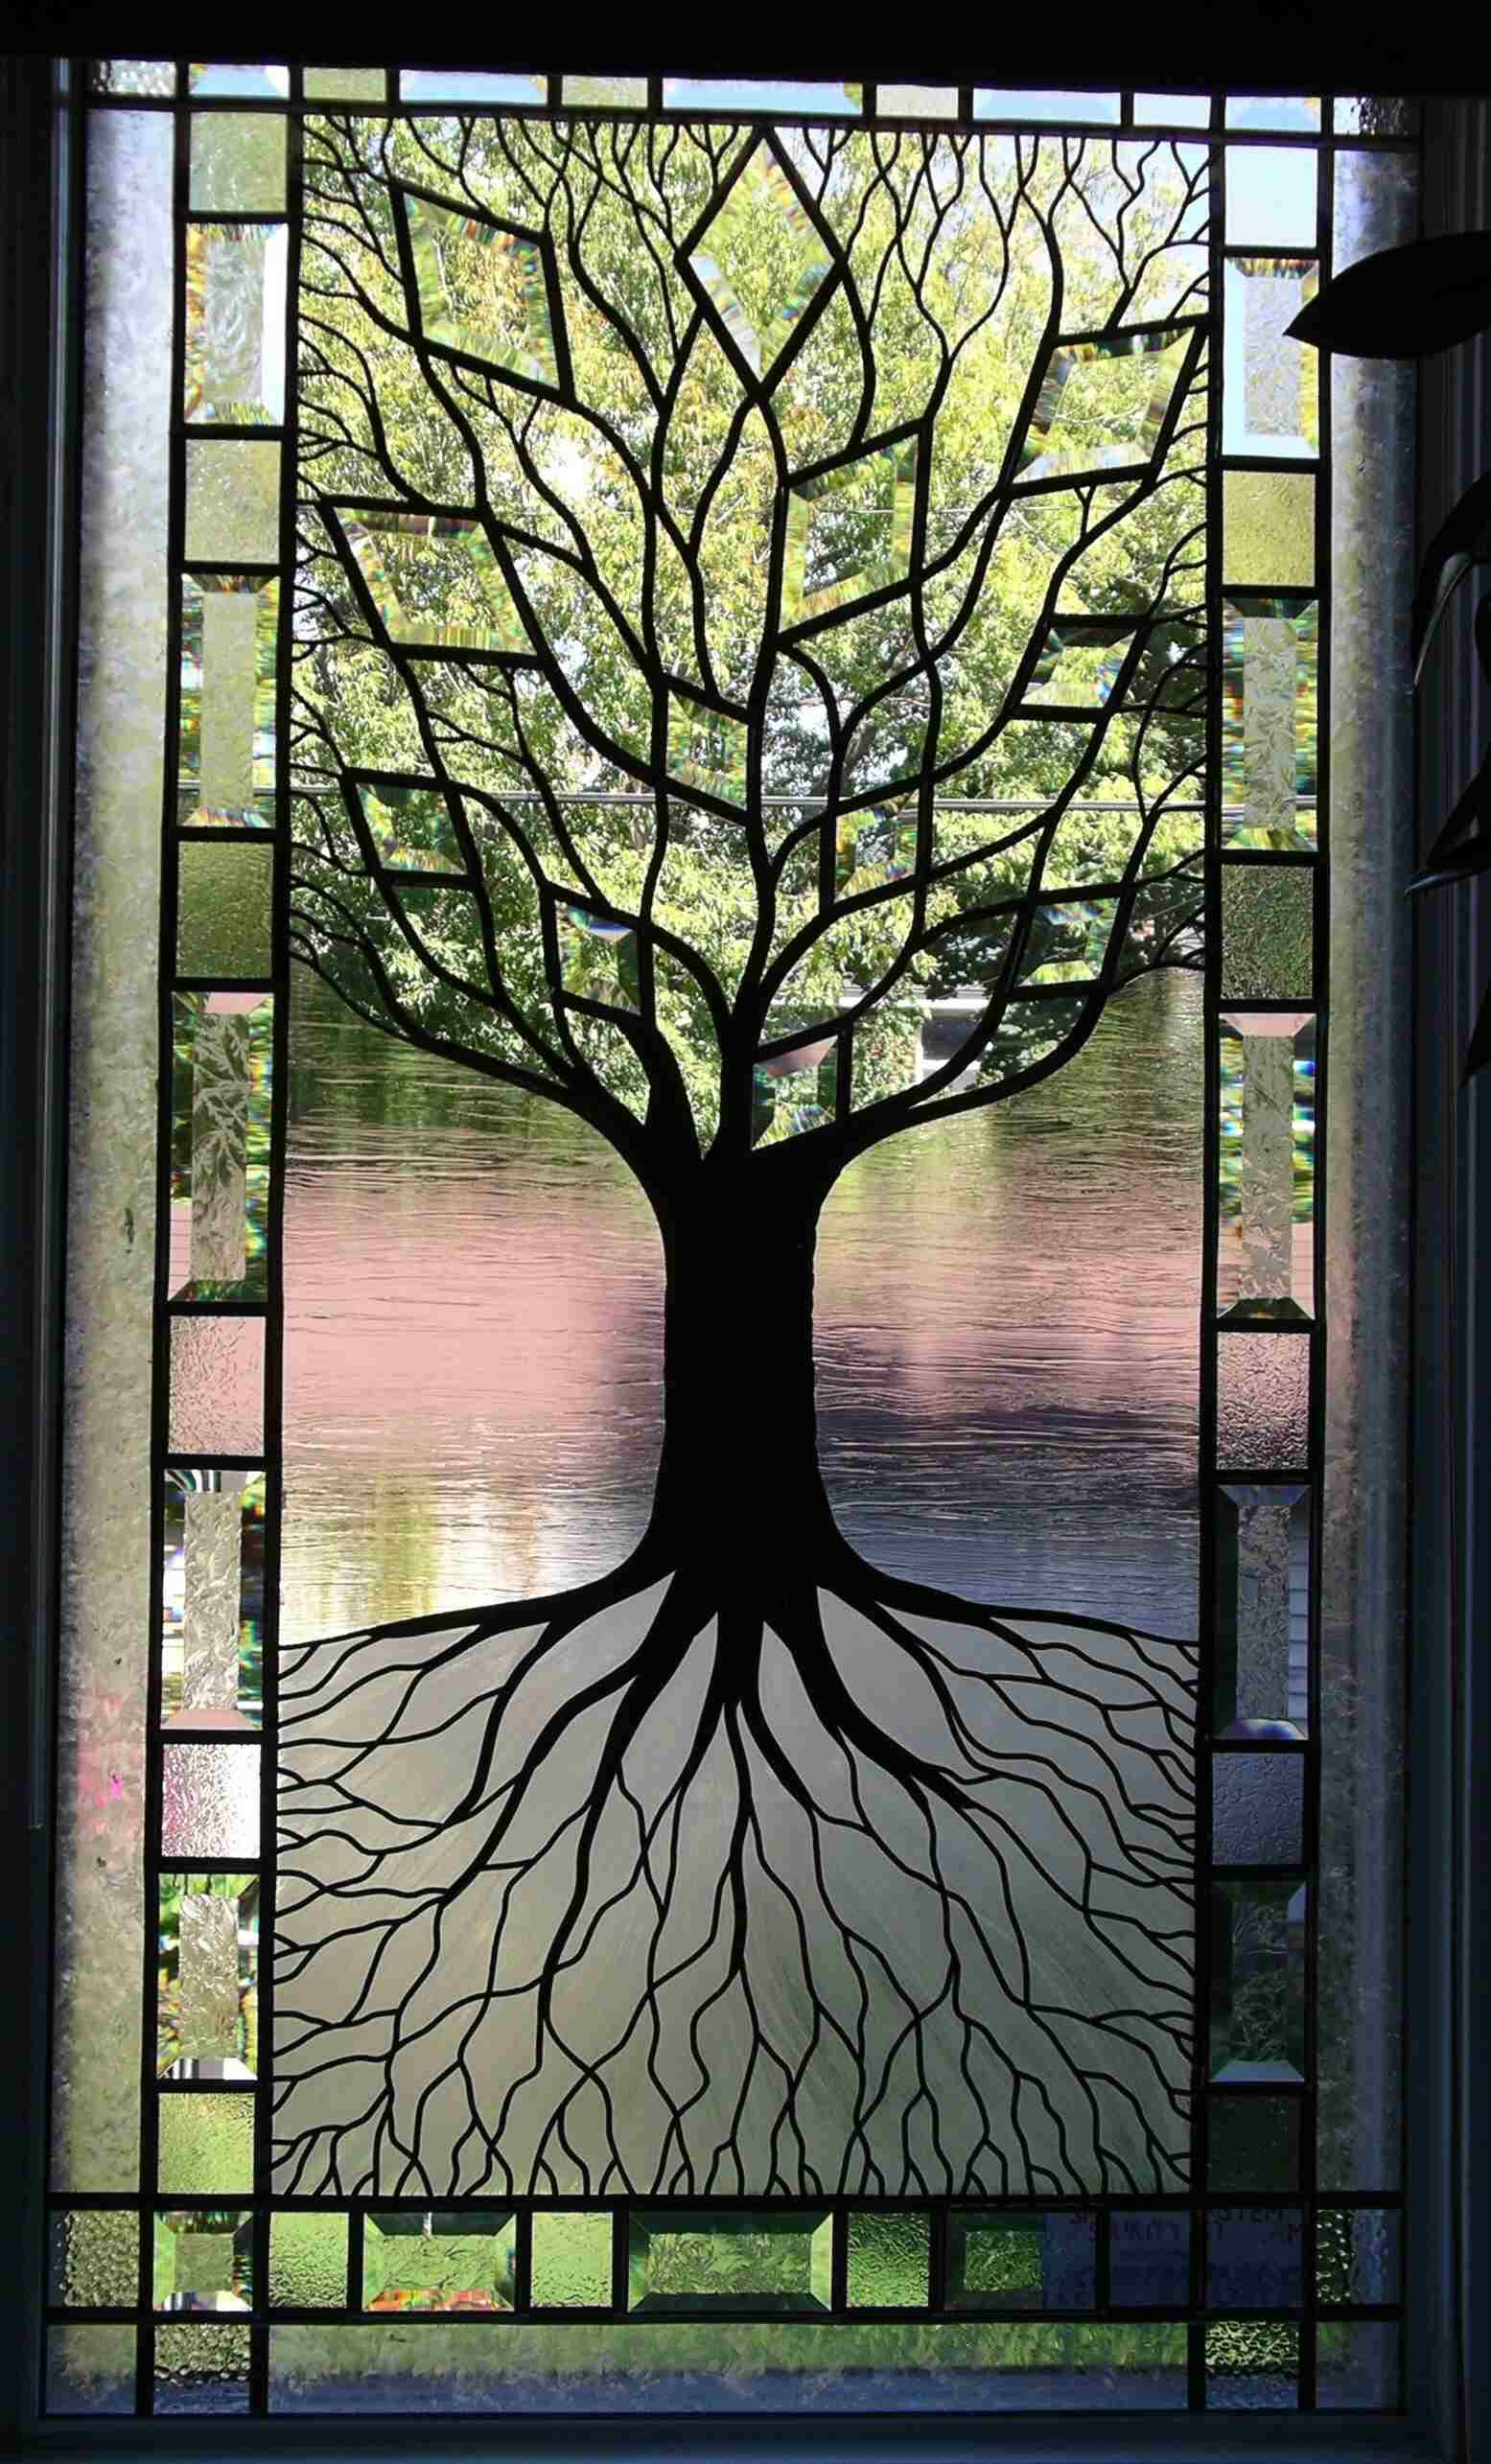 Beach theme decoration stained glass window panels arts crafts - Tree Of Life Stained Glass Window I Think I Can Do This